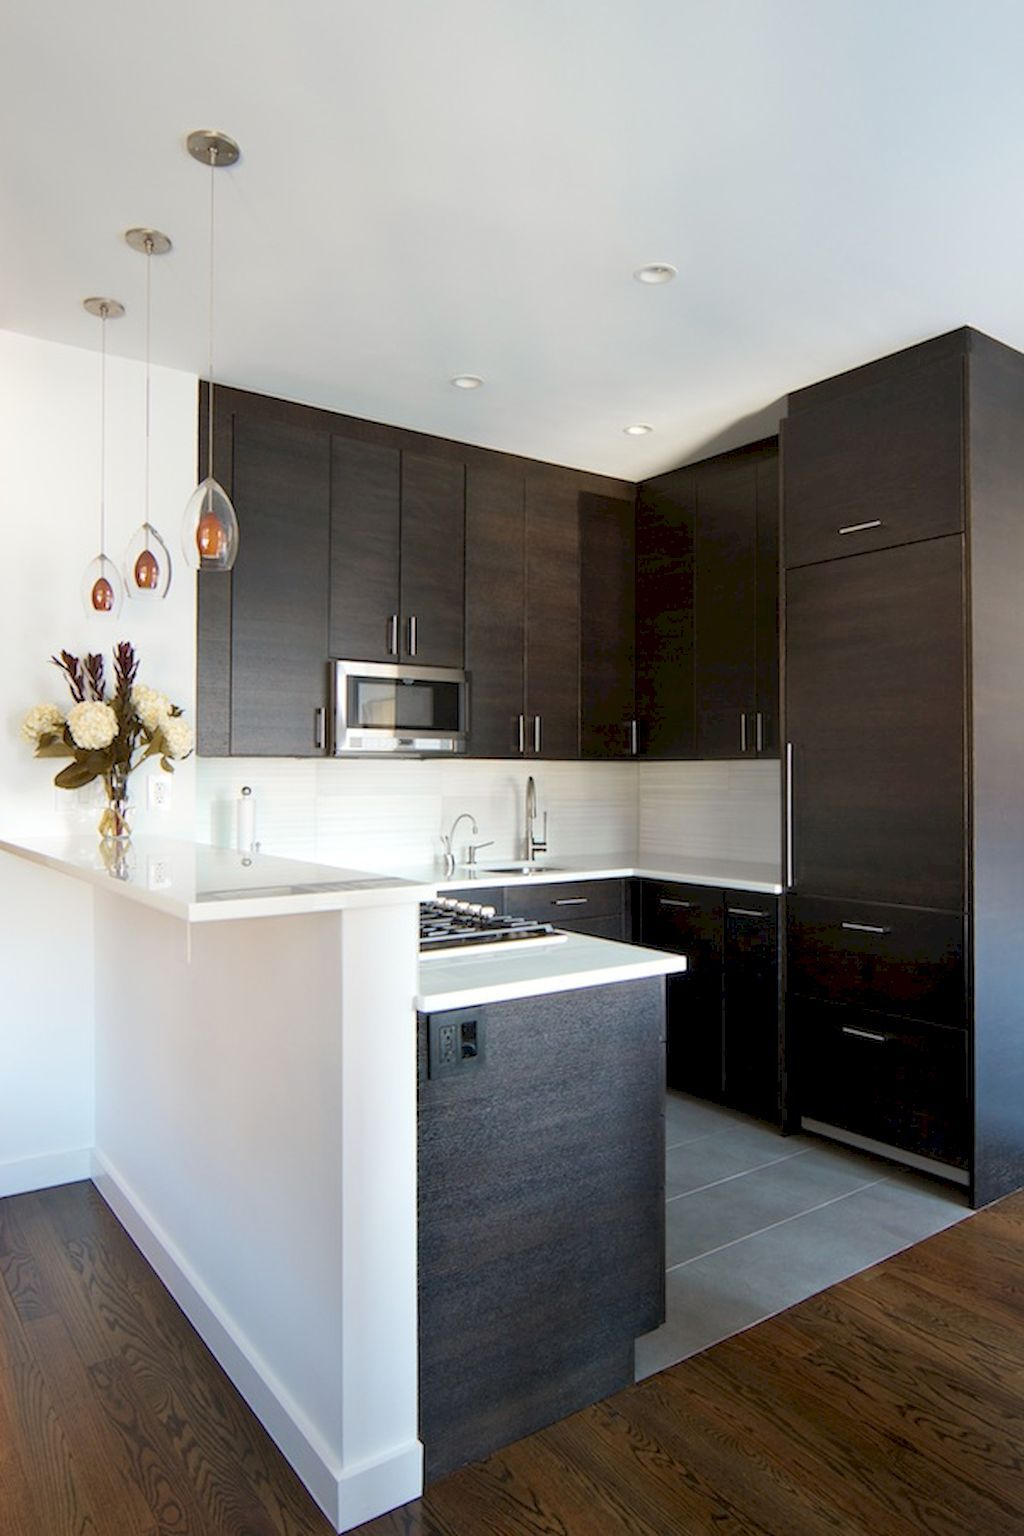 small kitchen ideas remodel kitchens kitchen design and small